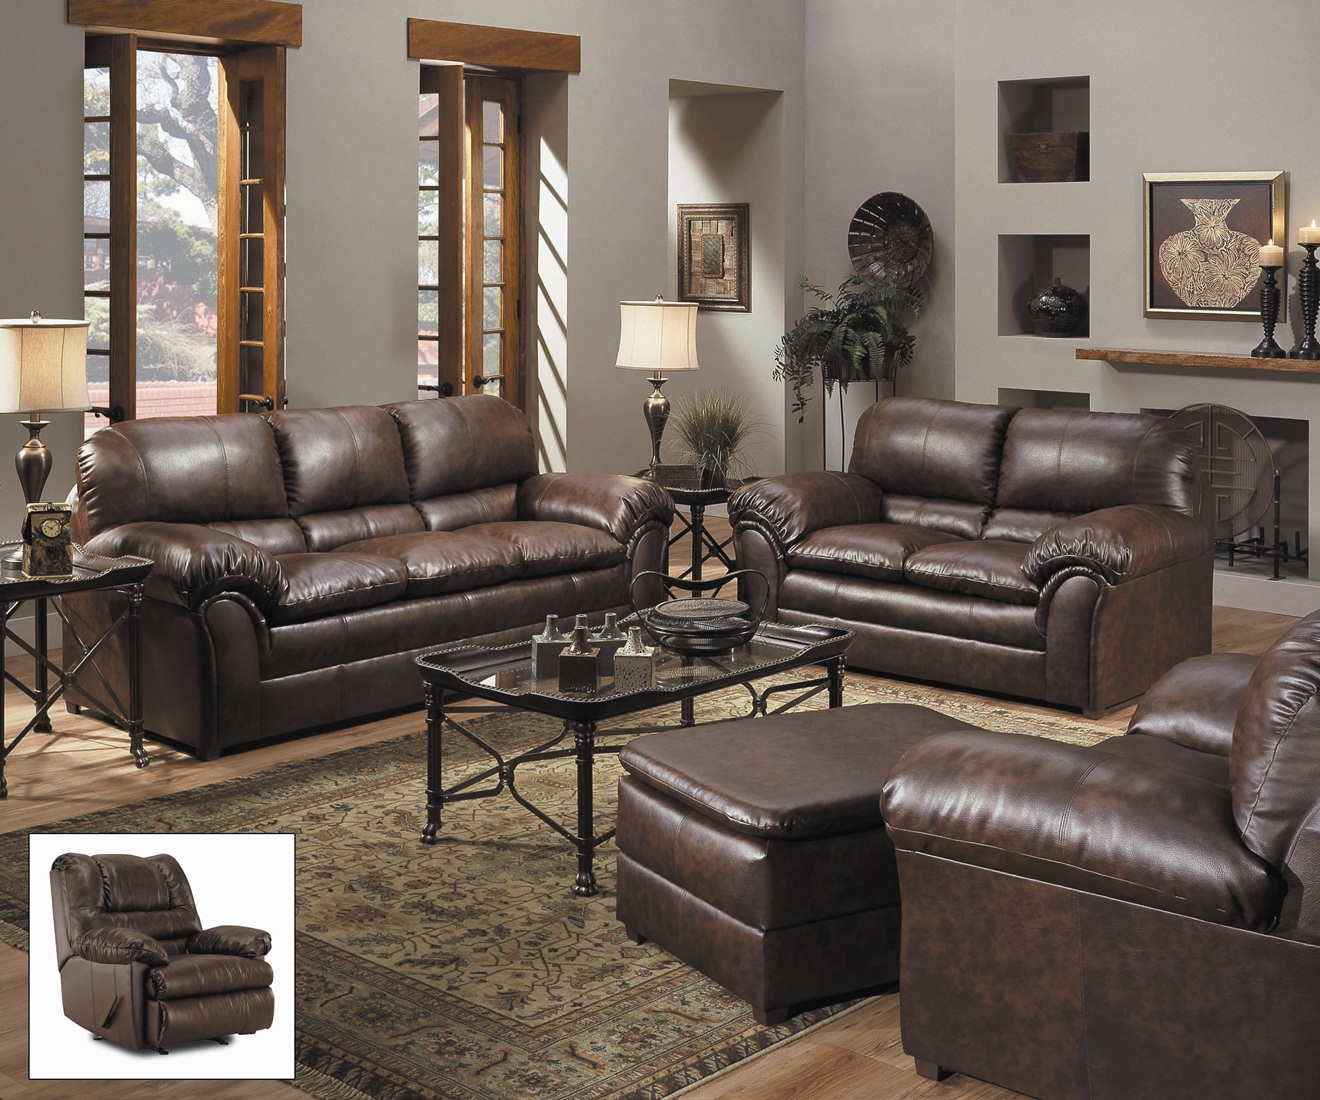 Geneva classic brown bonded leather living room furniture for Room with furniture